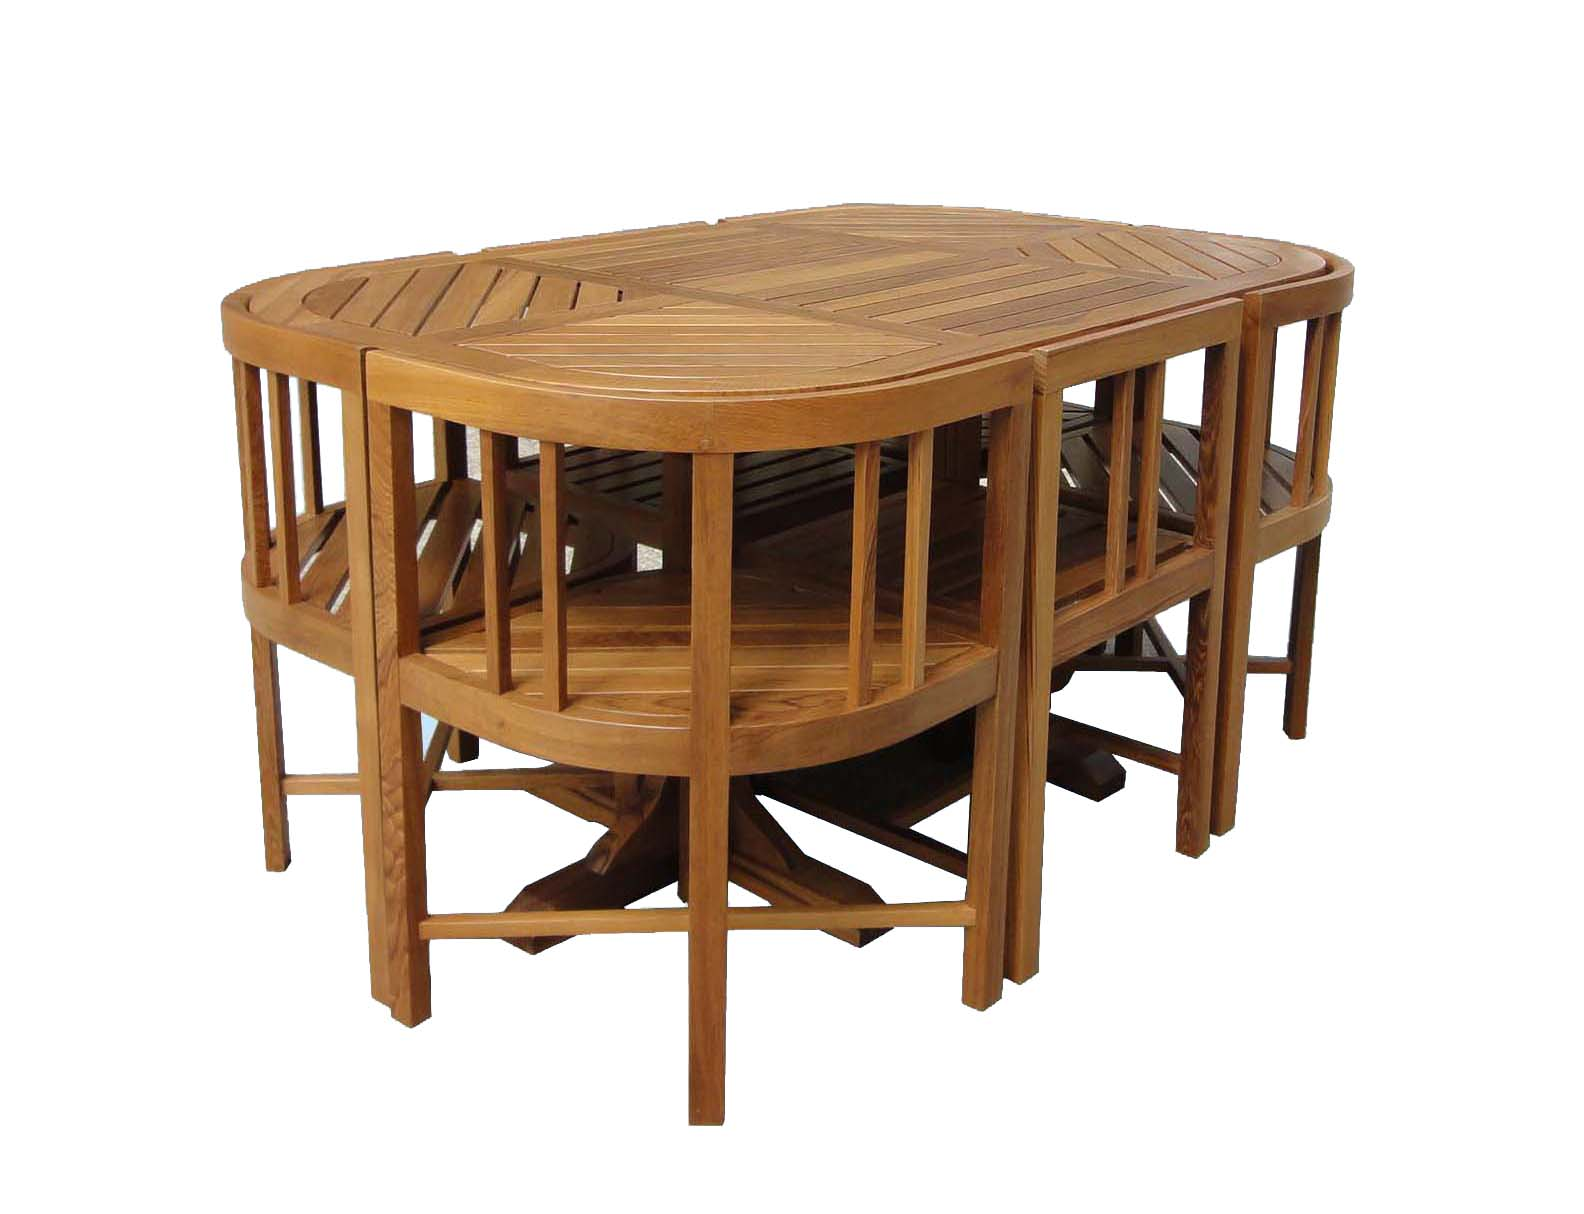 Dsc01496 asia wood quality teak furniture for Furniture yangon